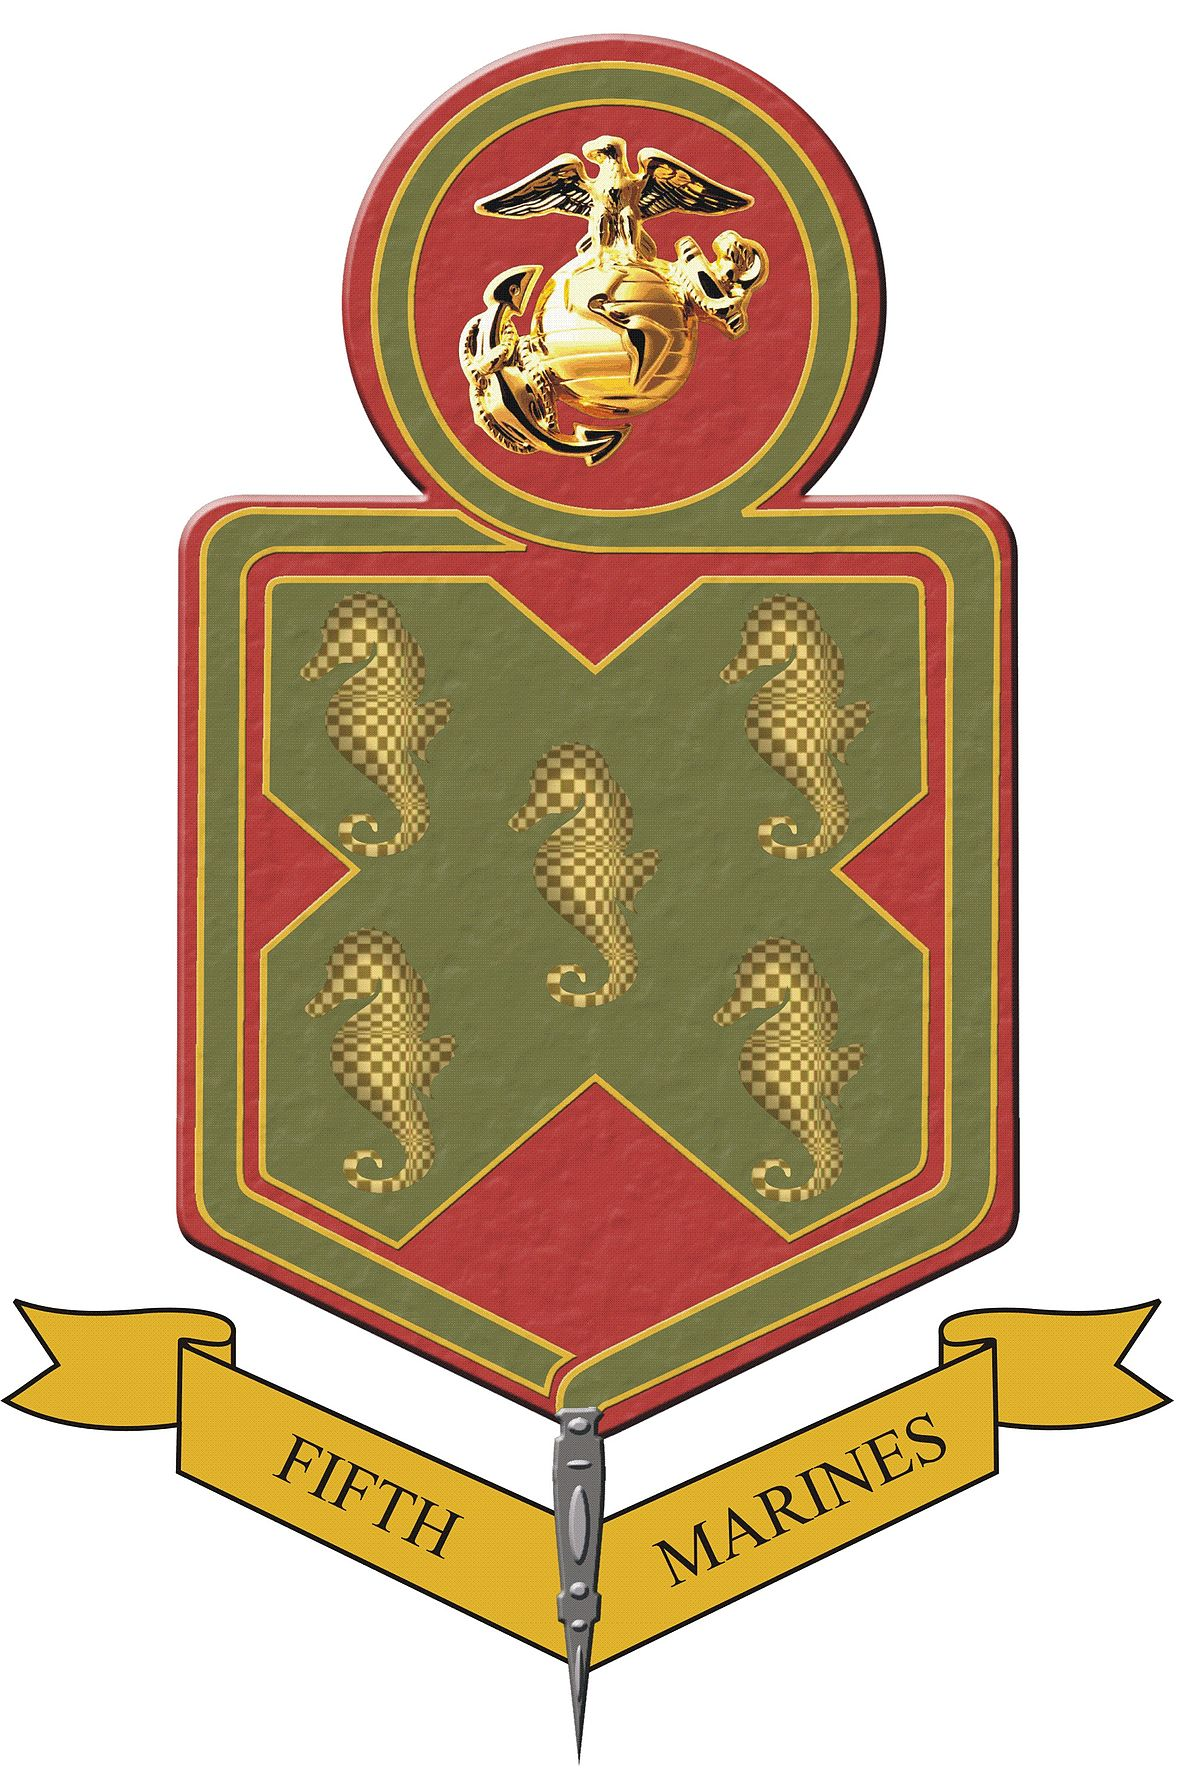 5th Marine Regiment - Wikipedia